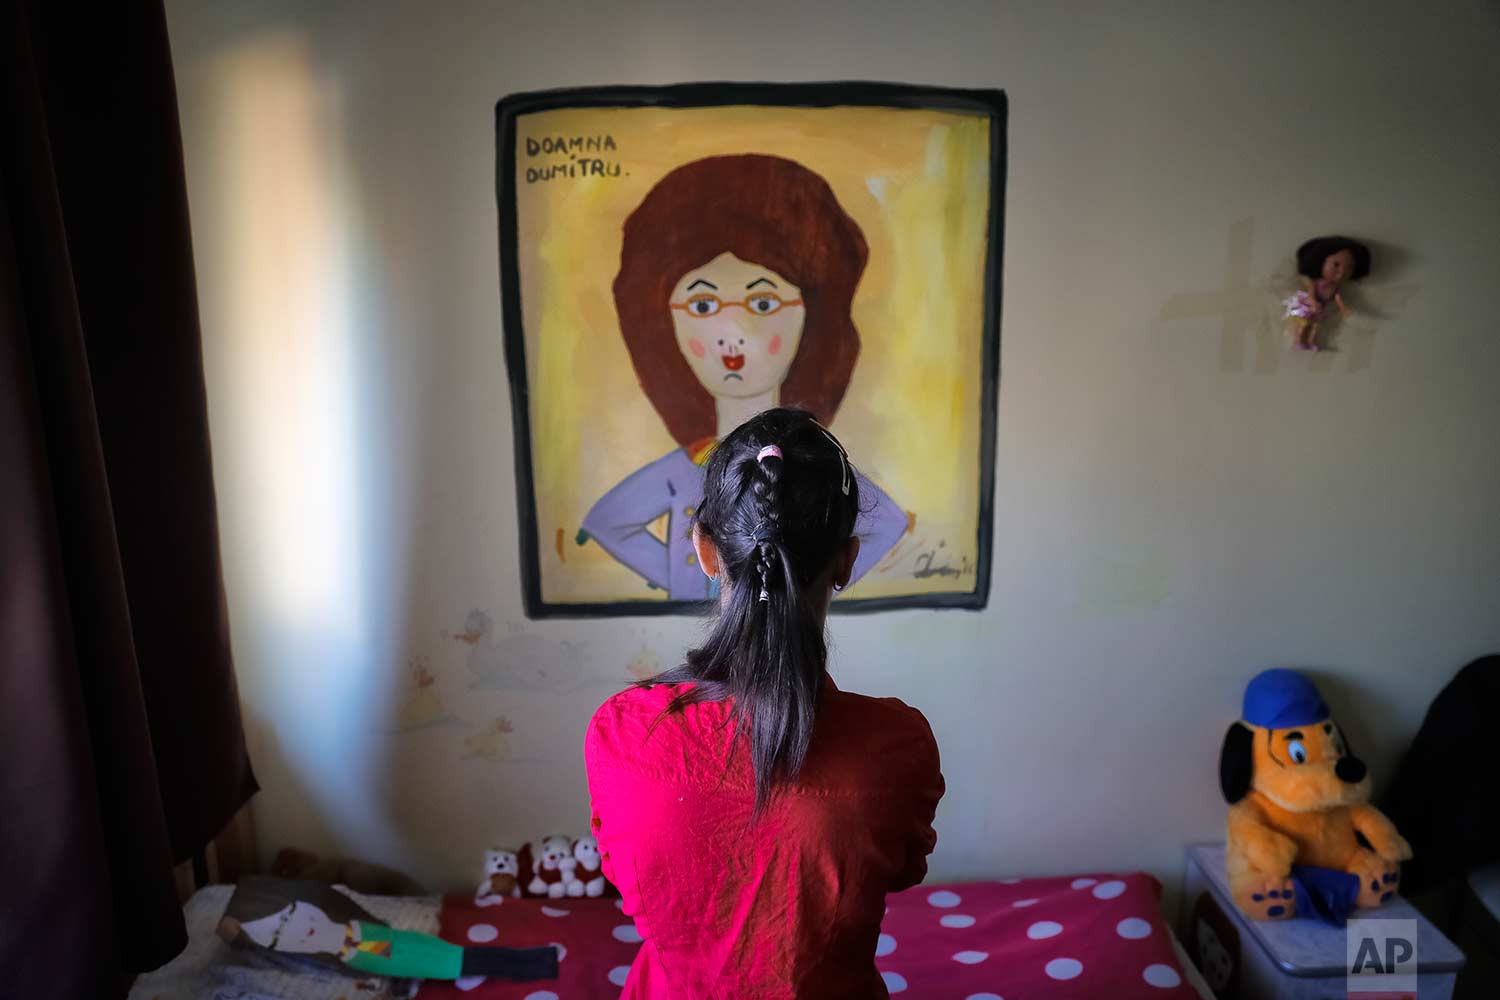 Elena, a girl living in a family style home with 10 other youths, poses for a photo in front of a painting of one of her teachers, in Bucharest, Romania, Wednesday, Nov. 1, 2017. (AP Photo/Vadim Ghirda)